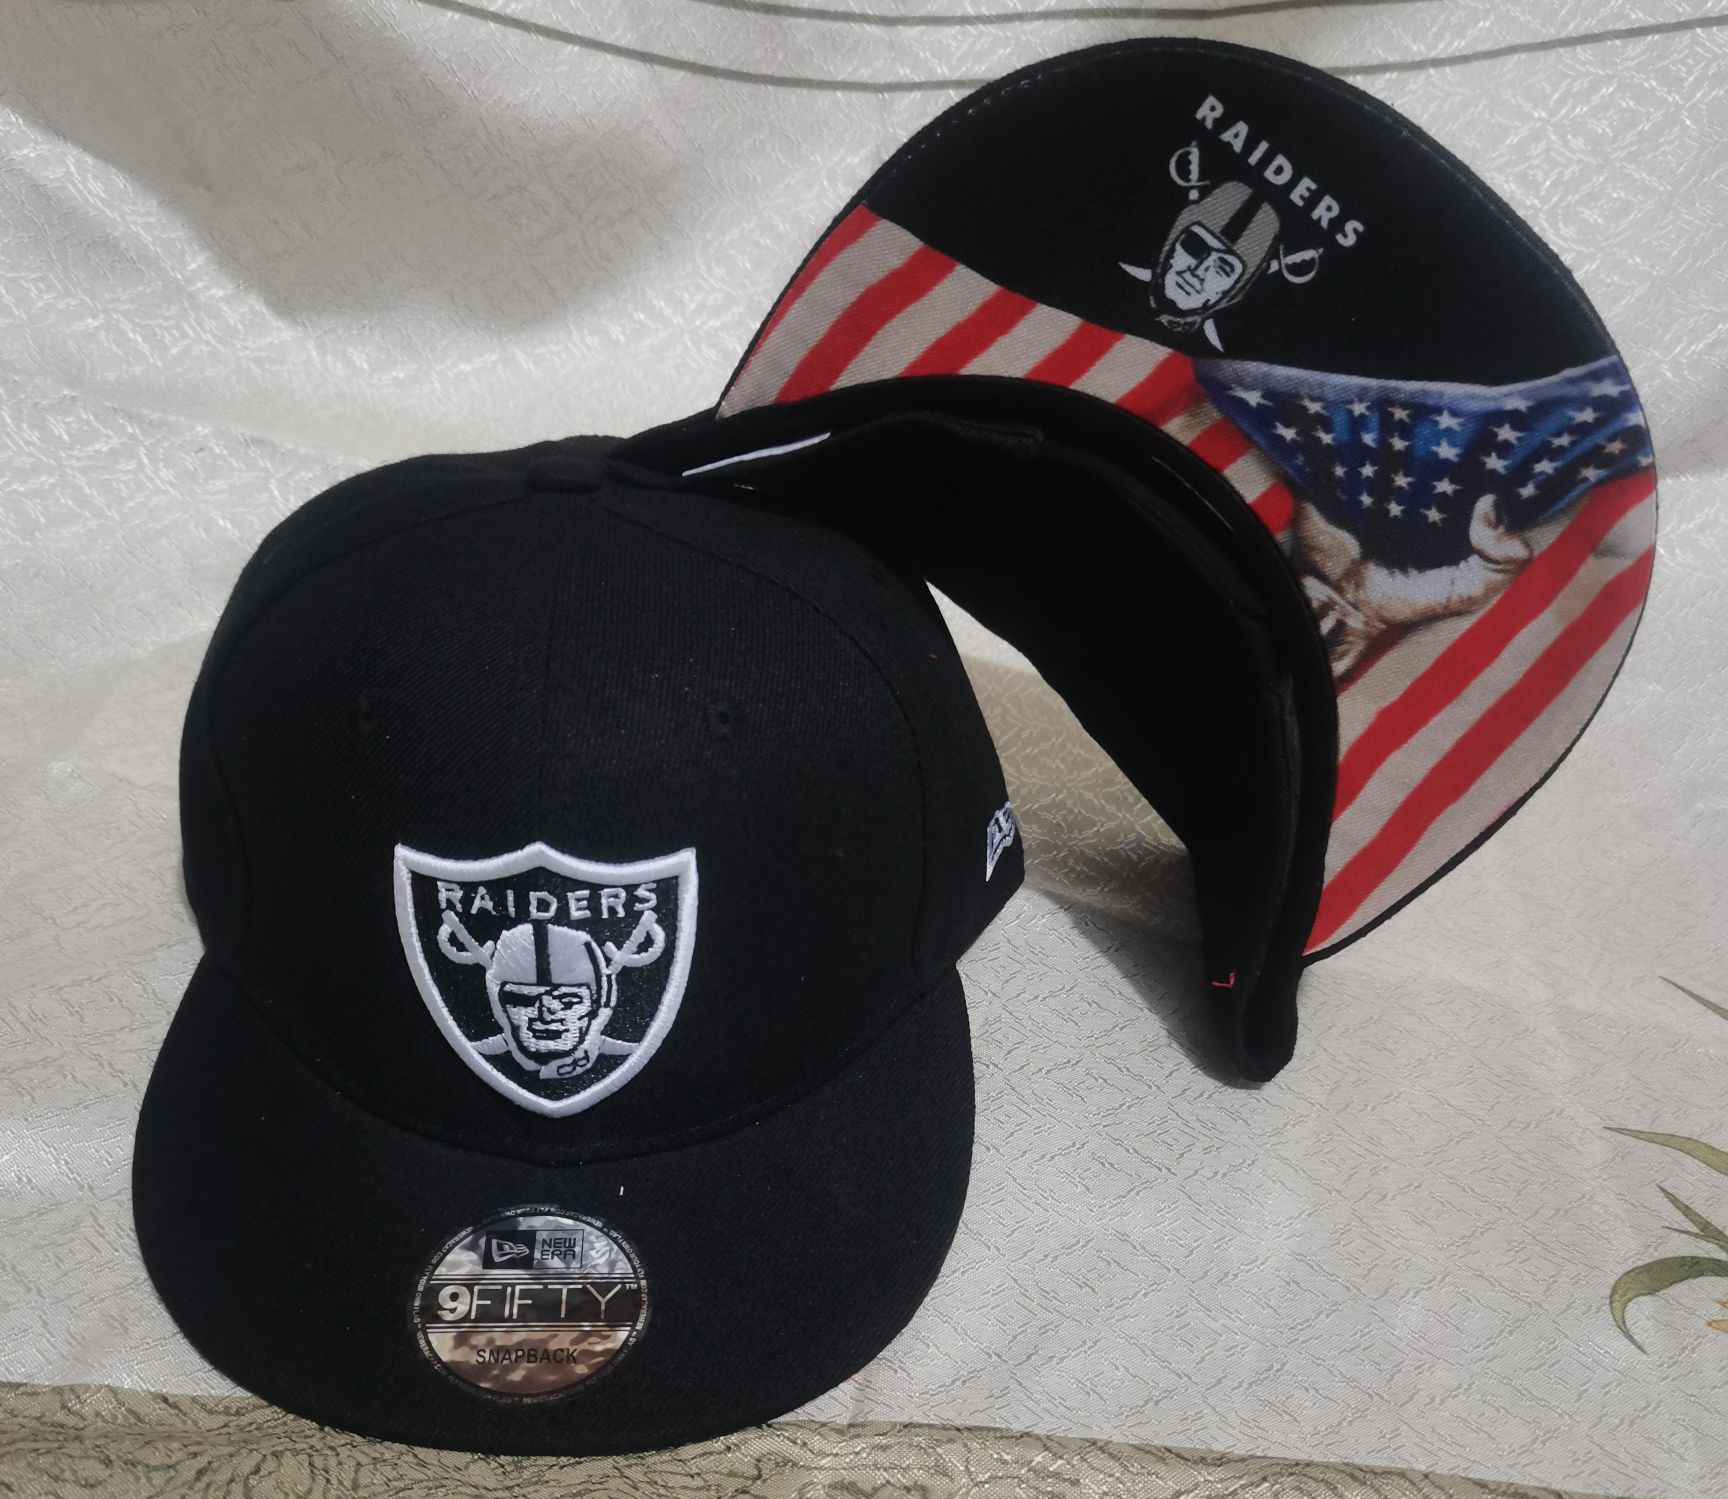 Cheap 2021 NFL Oakland Raiders 11 hat